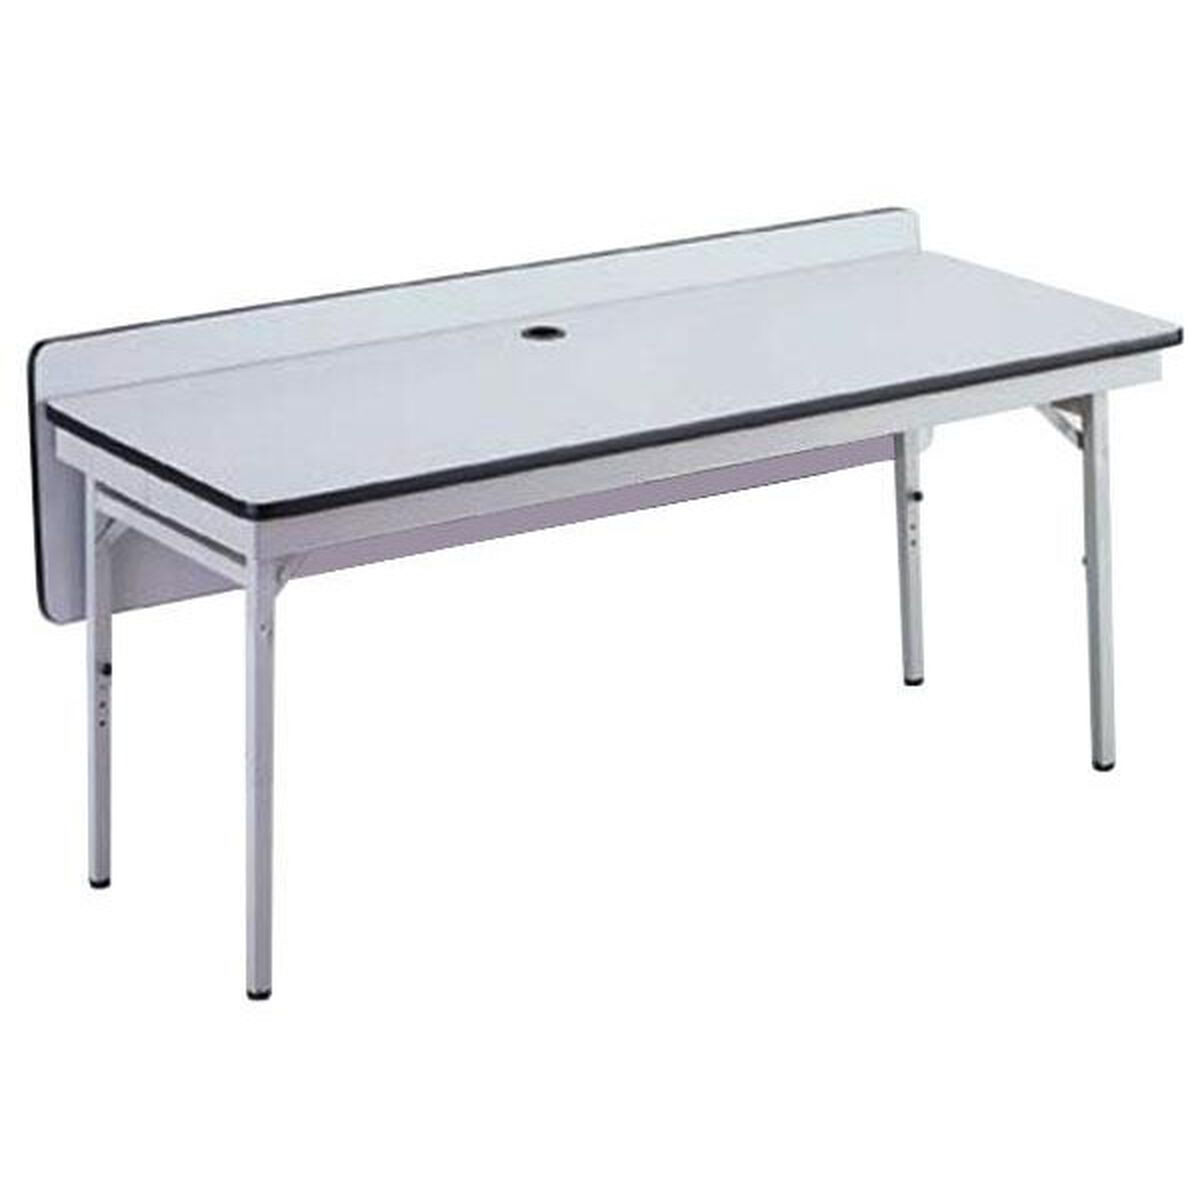 Adjustable Center Training Table STT Bizchaircom - Adjustable training table